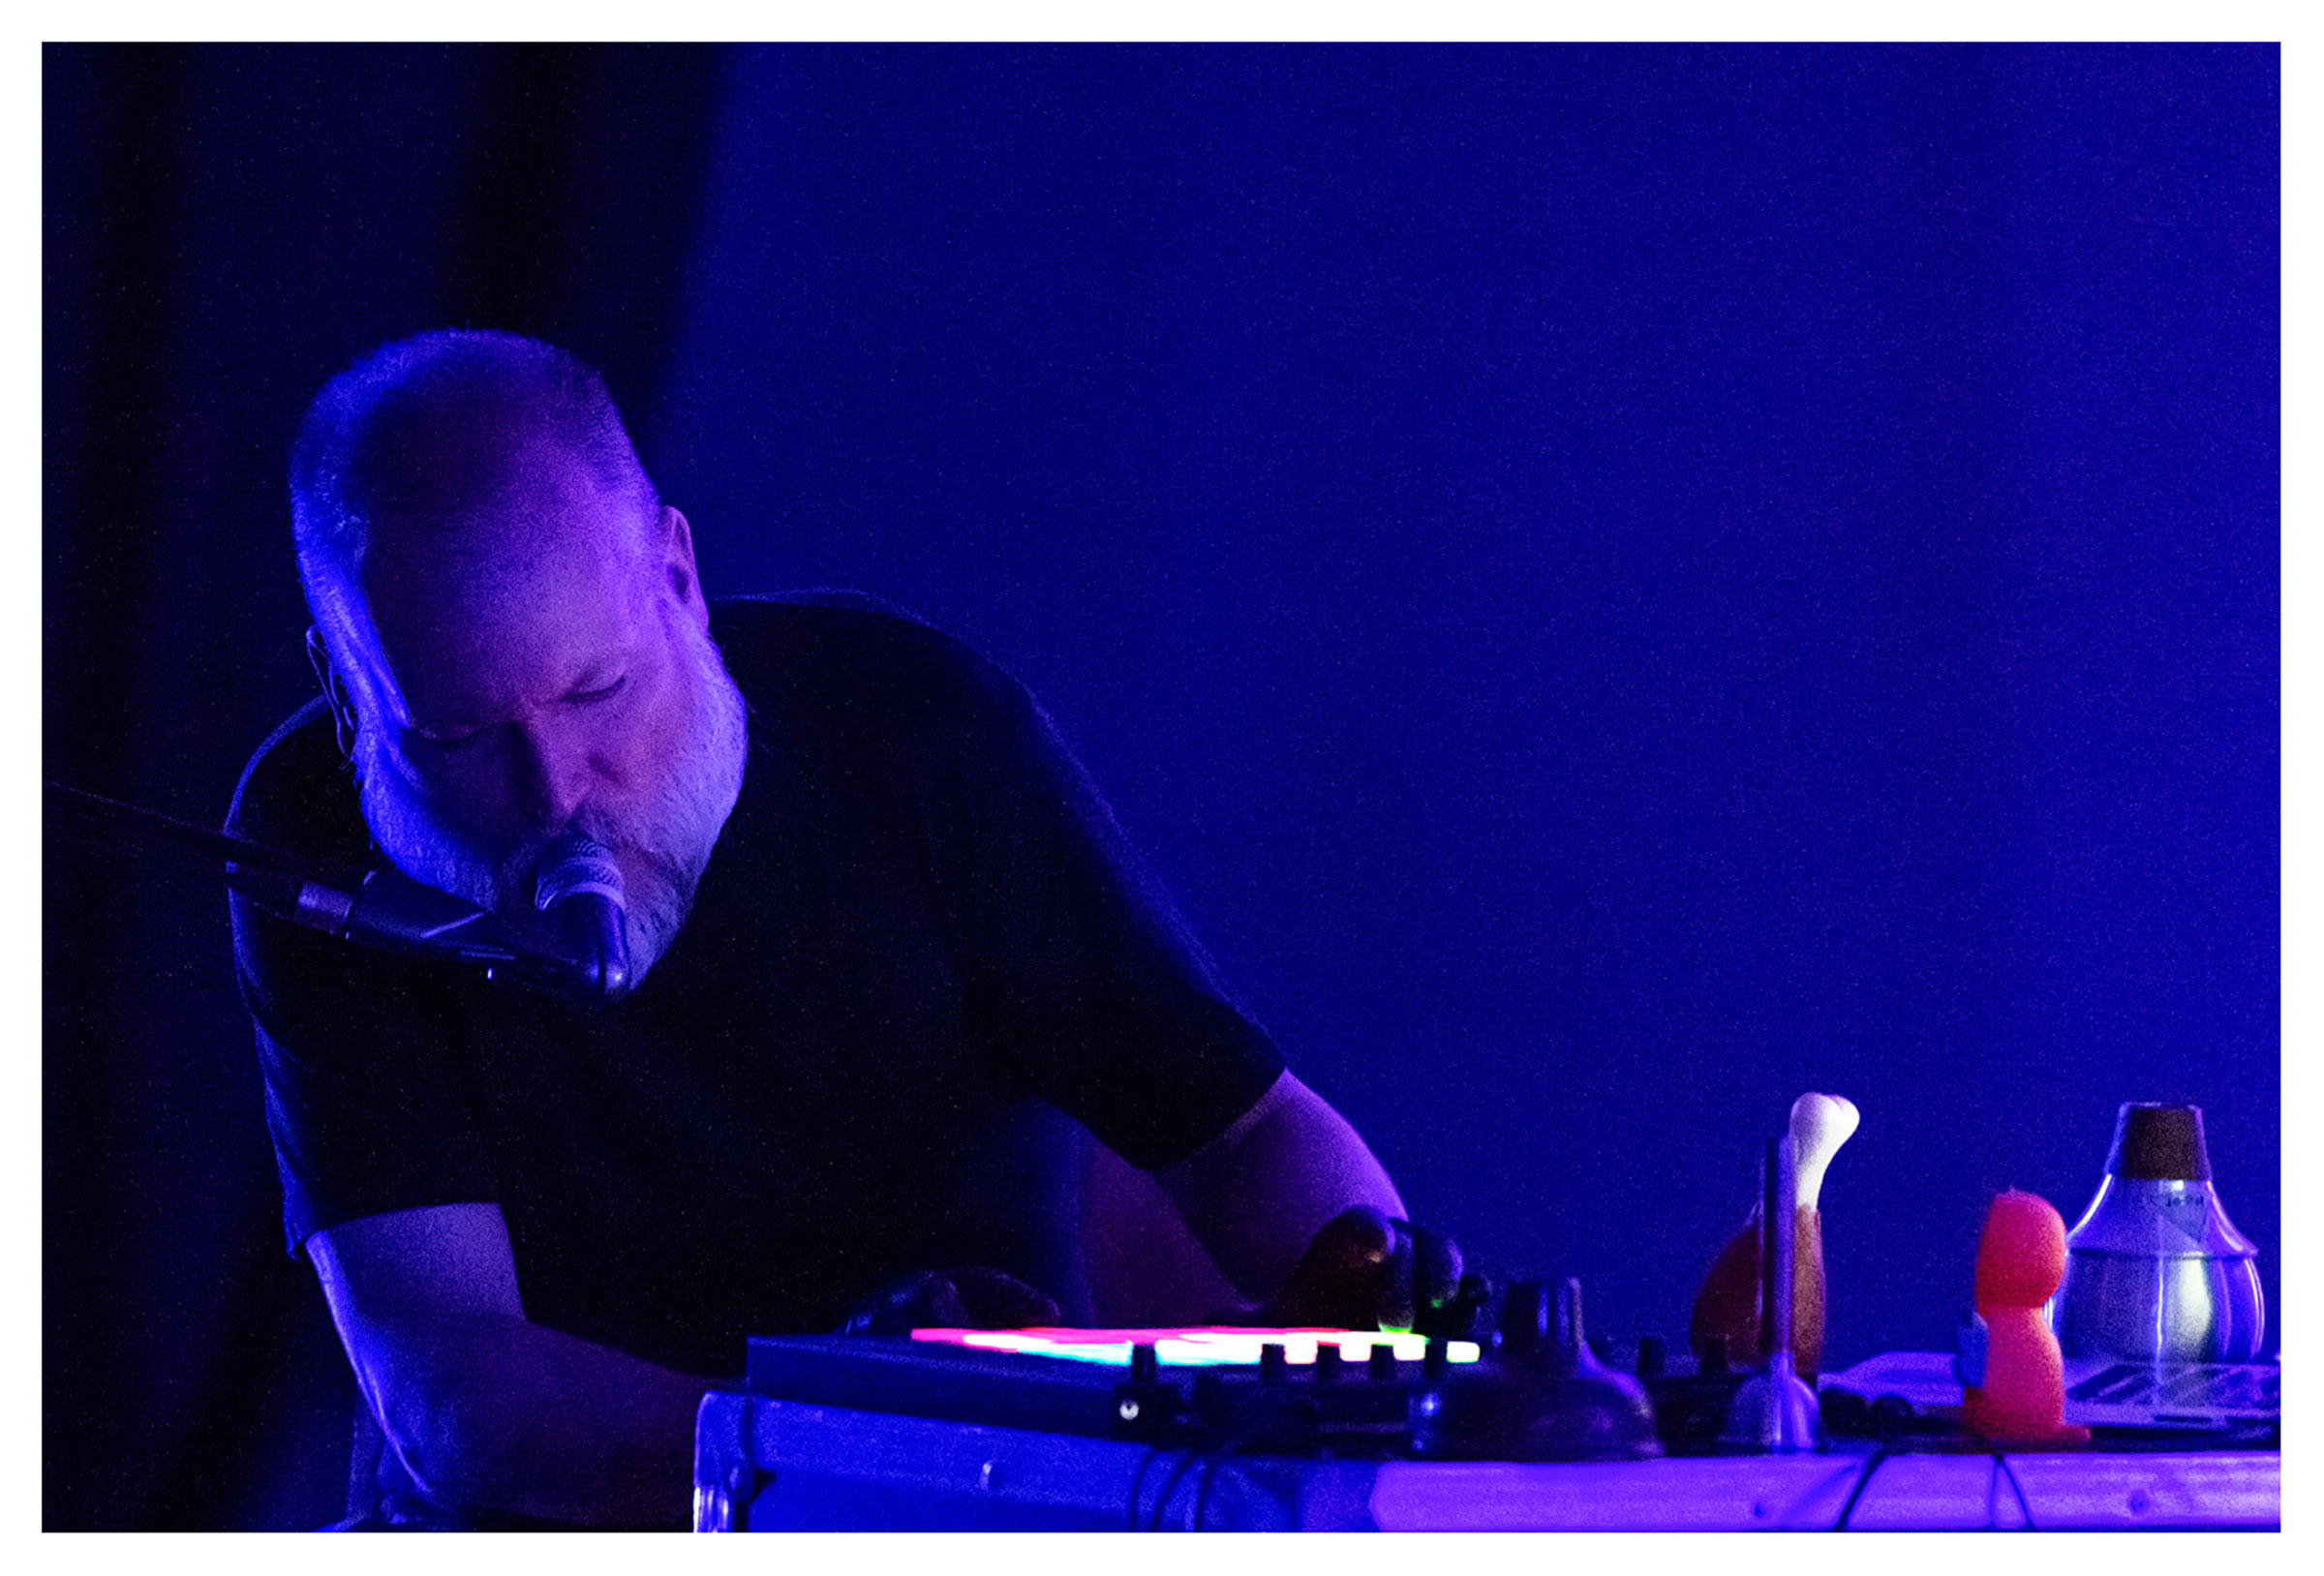 Jeff Kaiser at the Bernaola International Music Festival with The Forgetting Machine